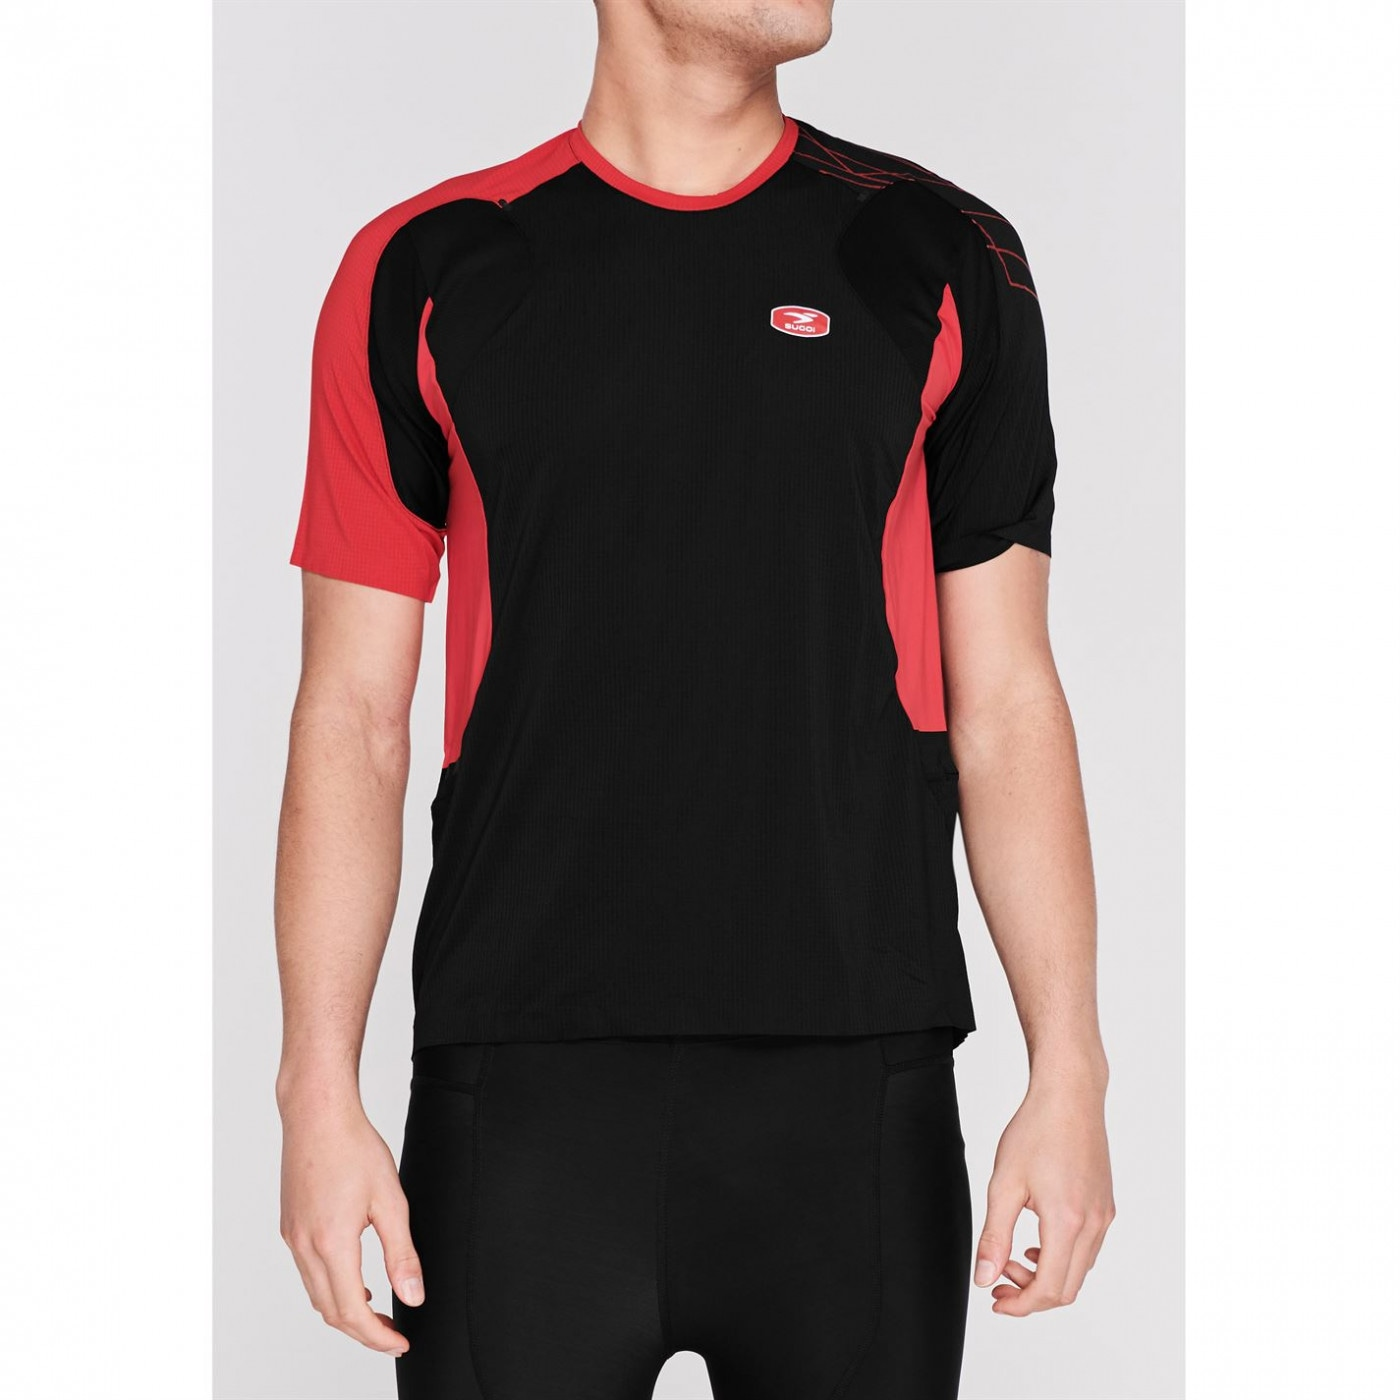 Sugoi RSX Jersey Mens